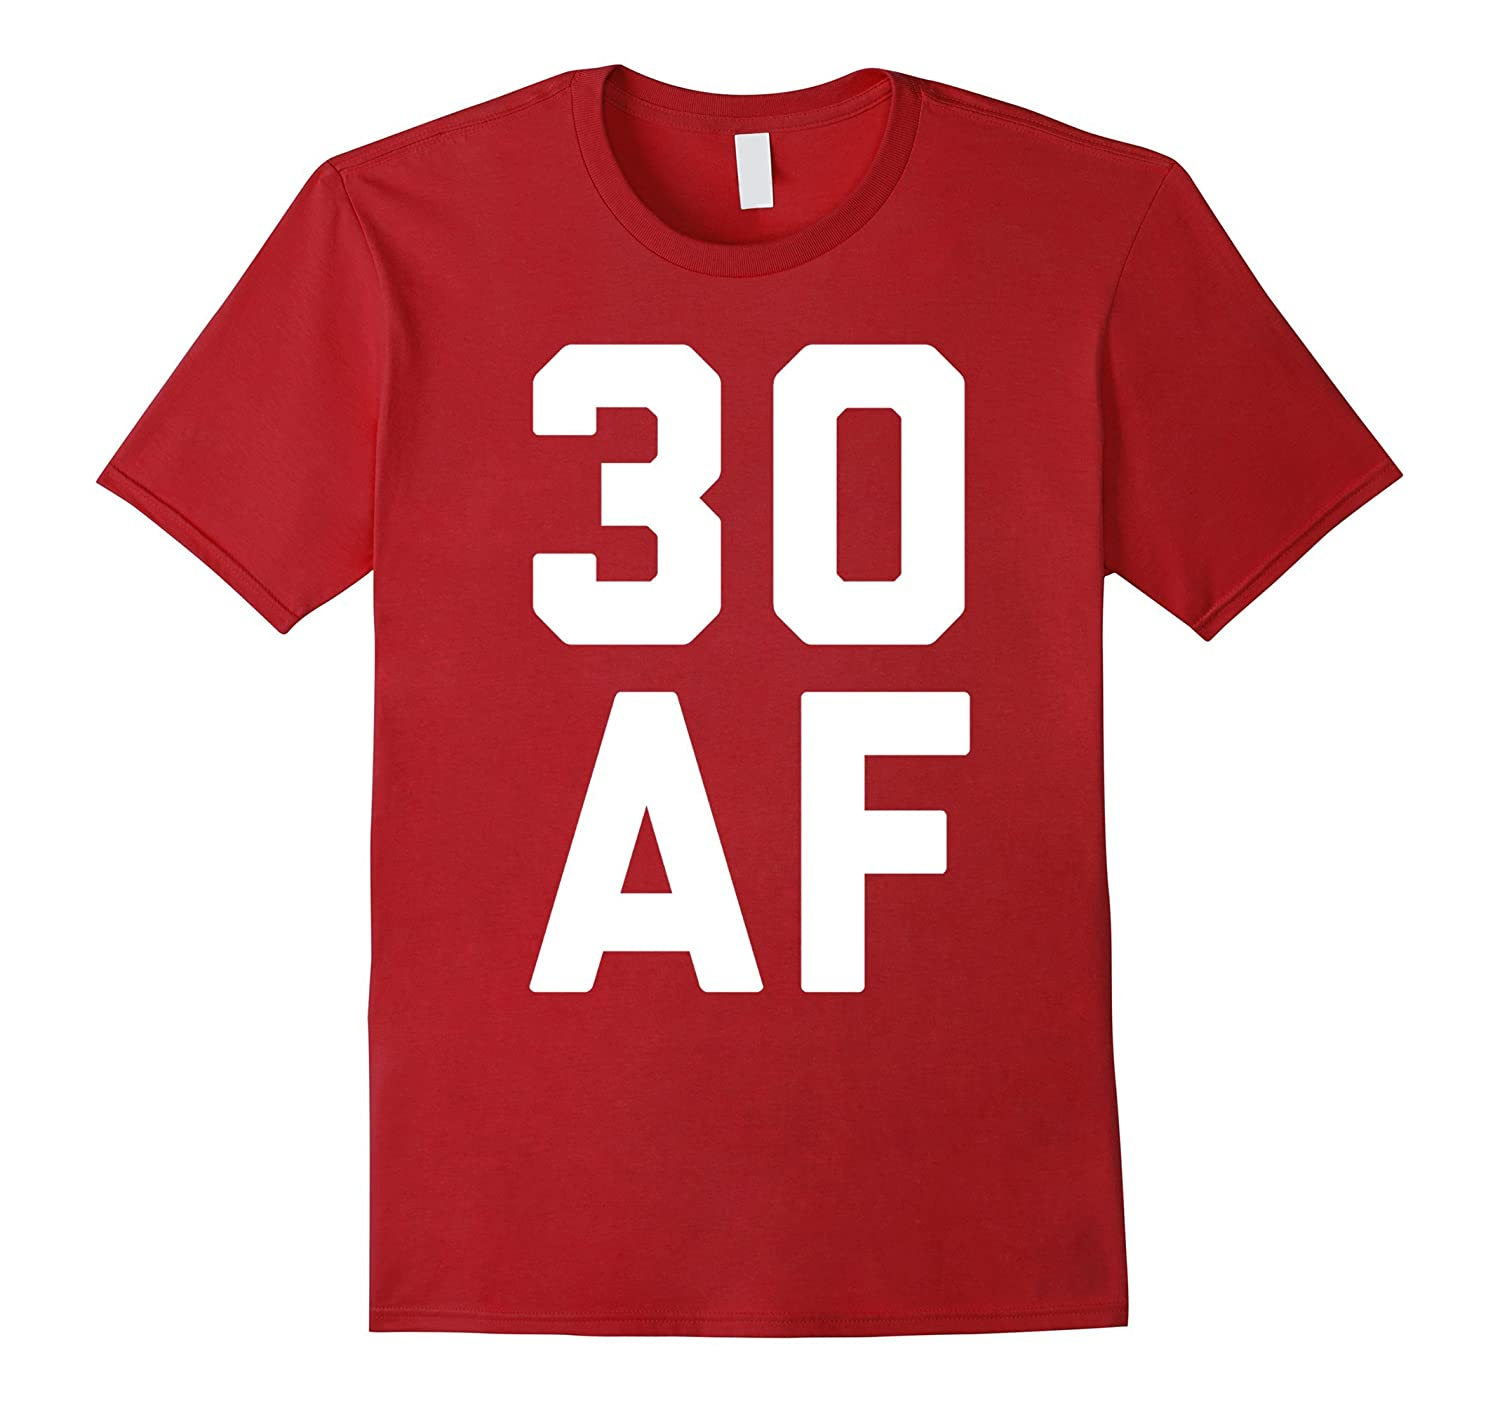 30 AF T-Shirt - 30th Birthday Shirt Men Women Thirty Gift-BN